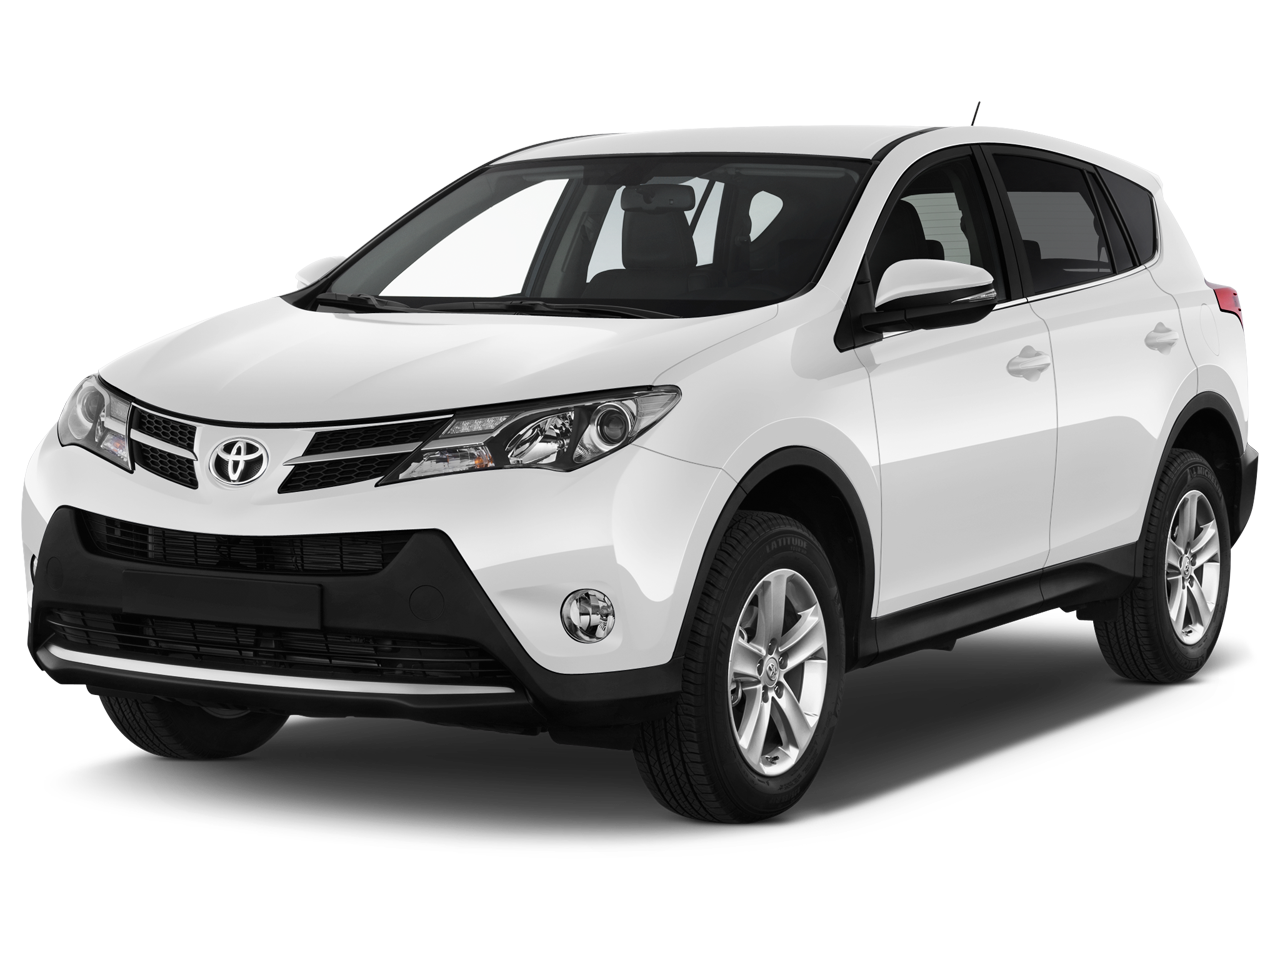 Toyota Certified Pre Owned >> Used 2015 Toyota RAV4 XLE - Near Chantilly VA - Honda Of Chantilly